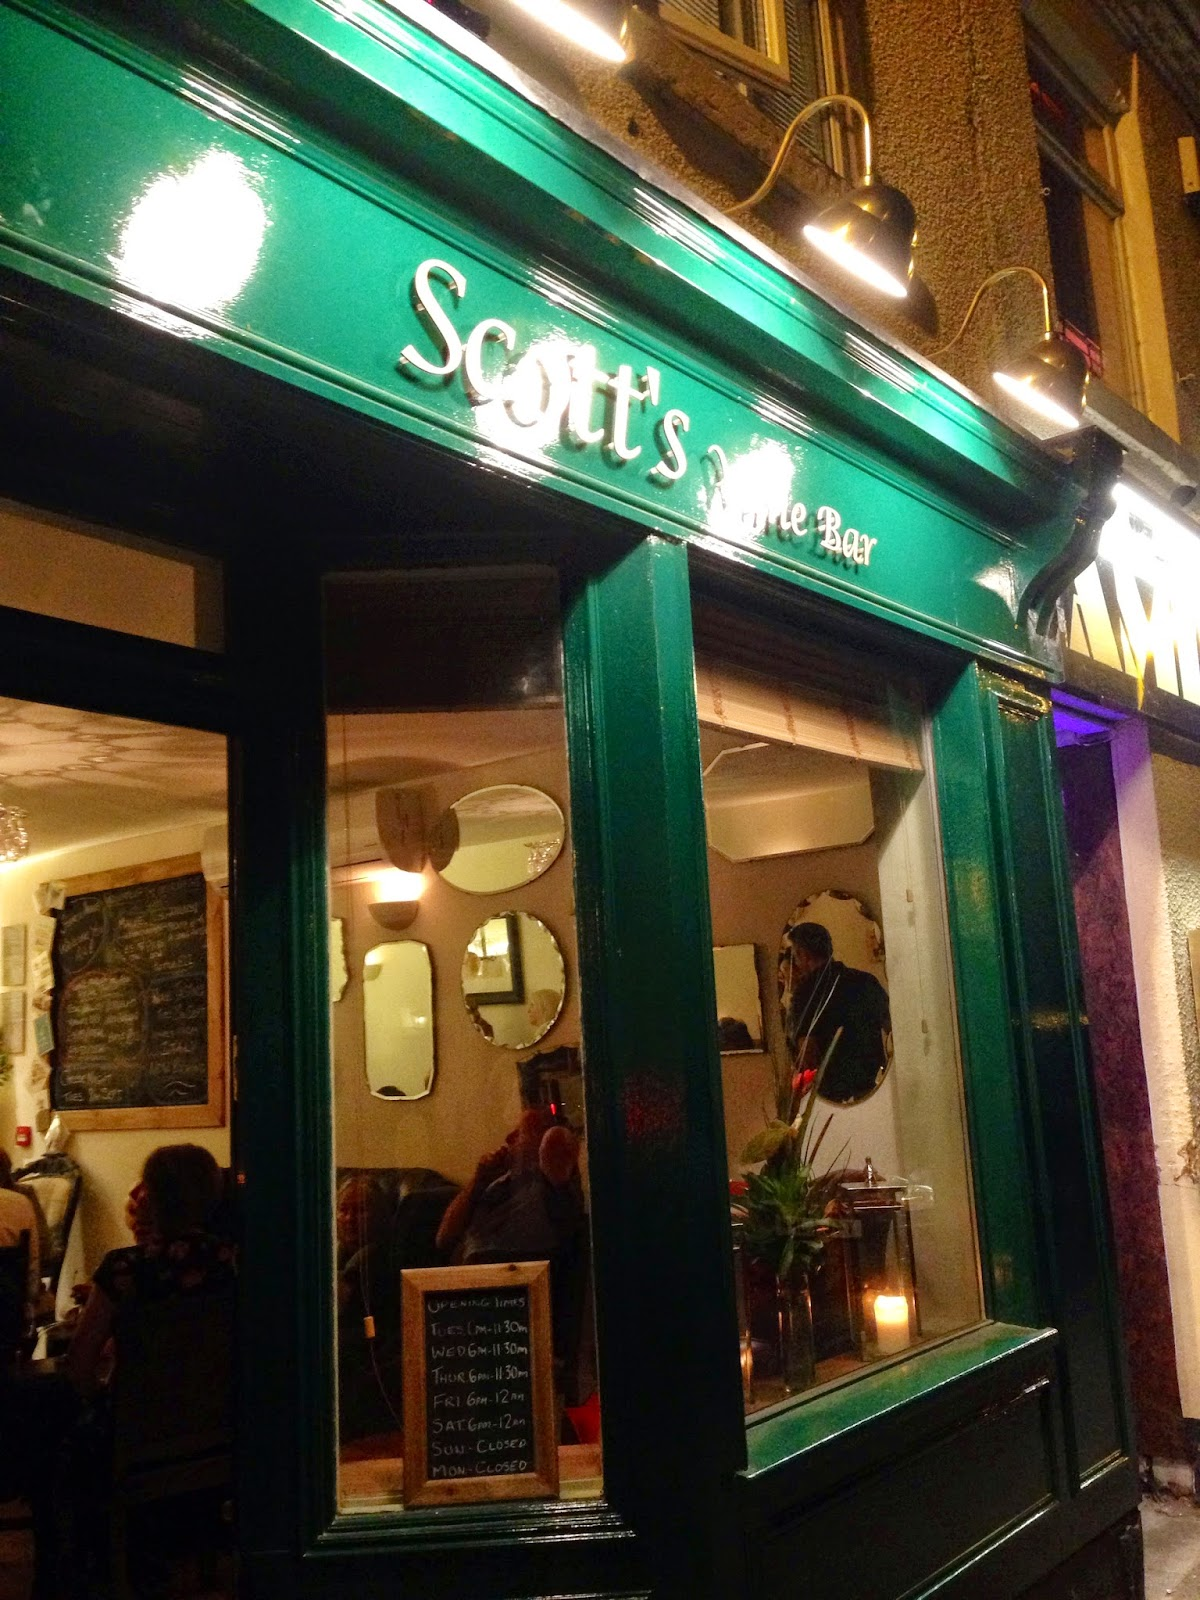 scotts wine bar in quorn